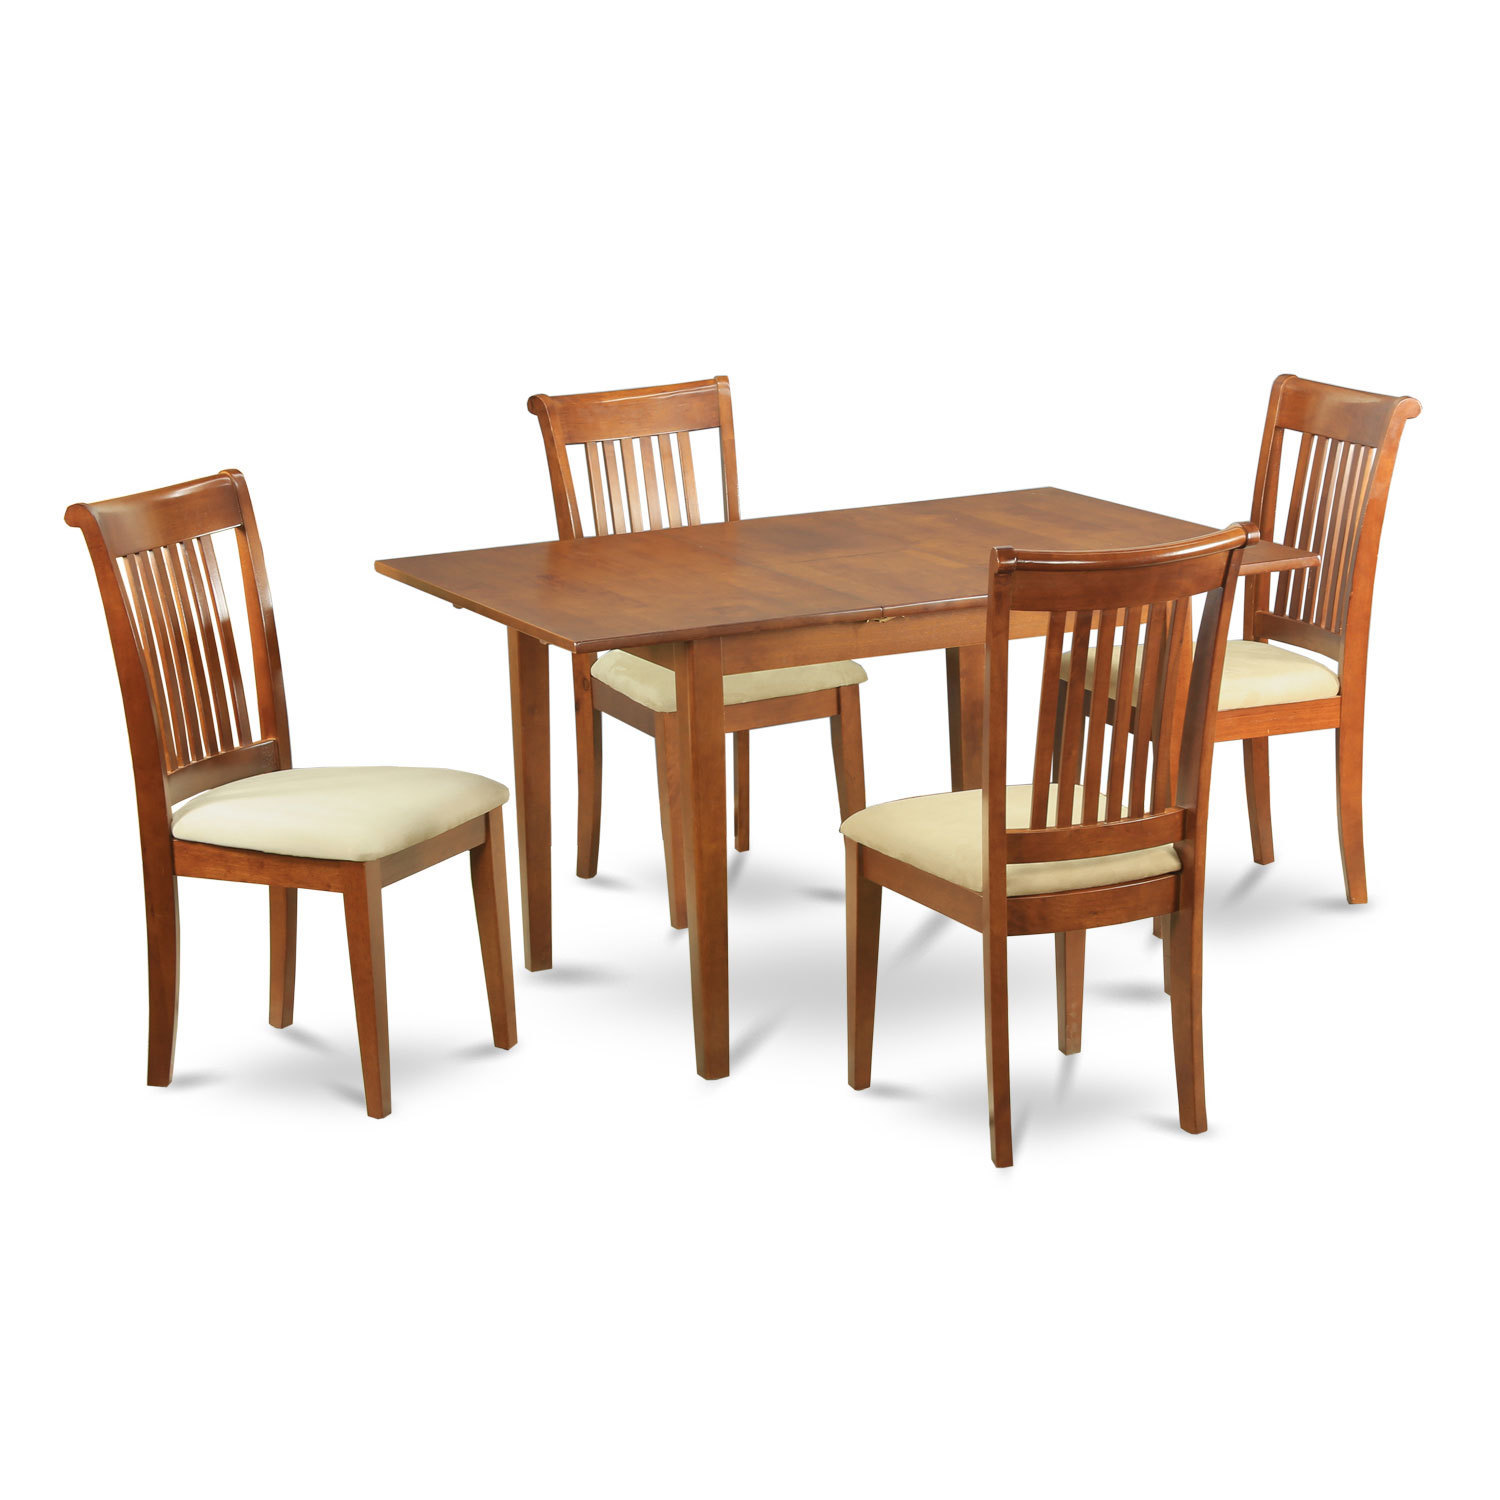 Small dinette set design homesfeed for Small dining table and chairs